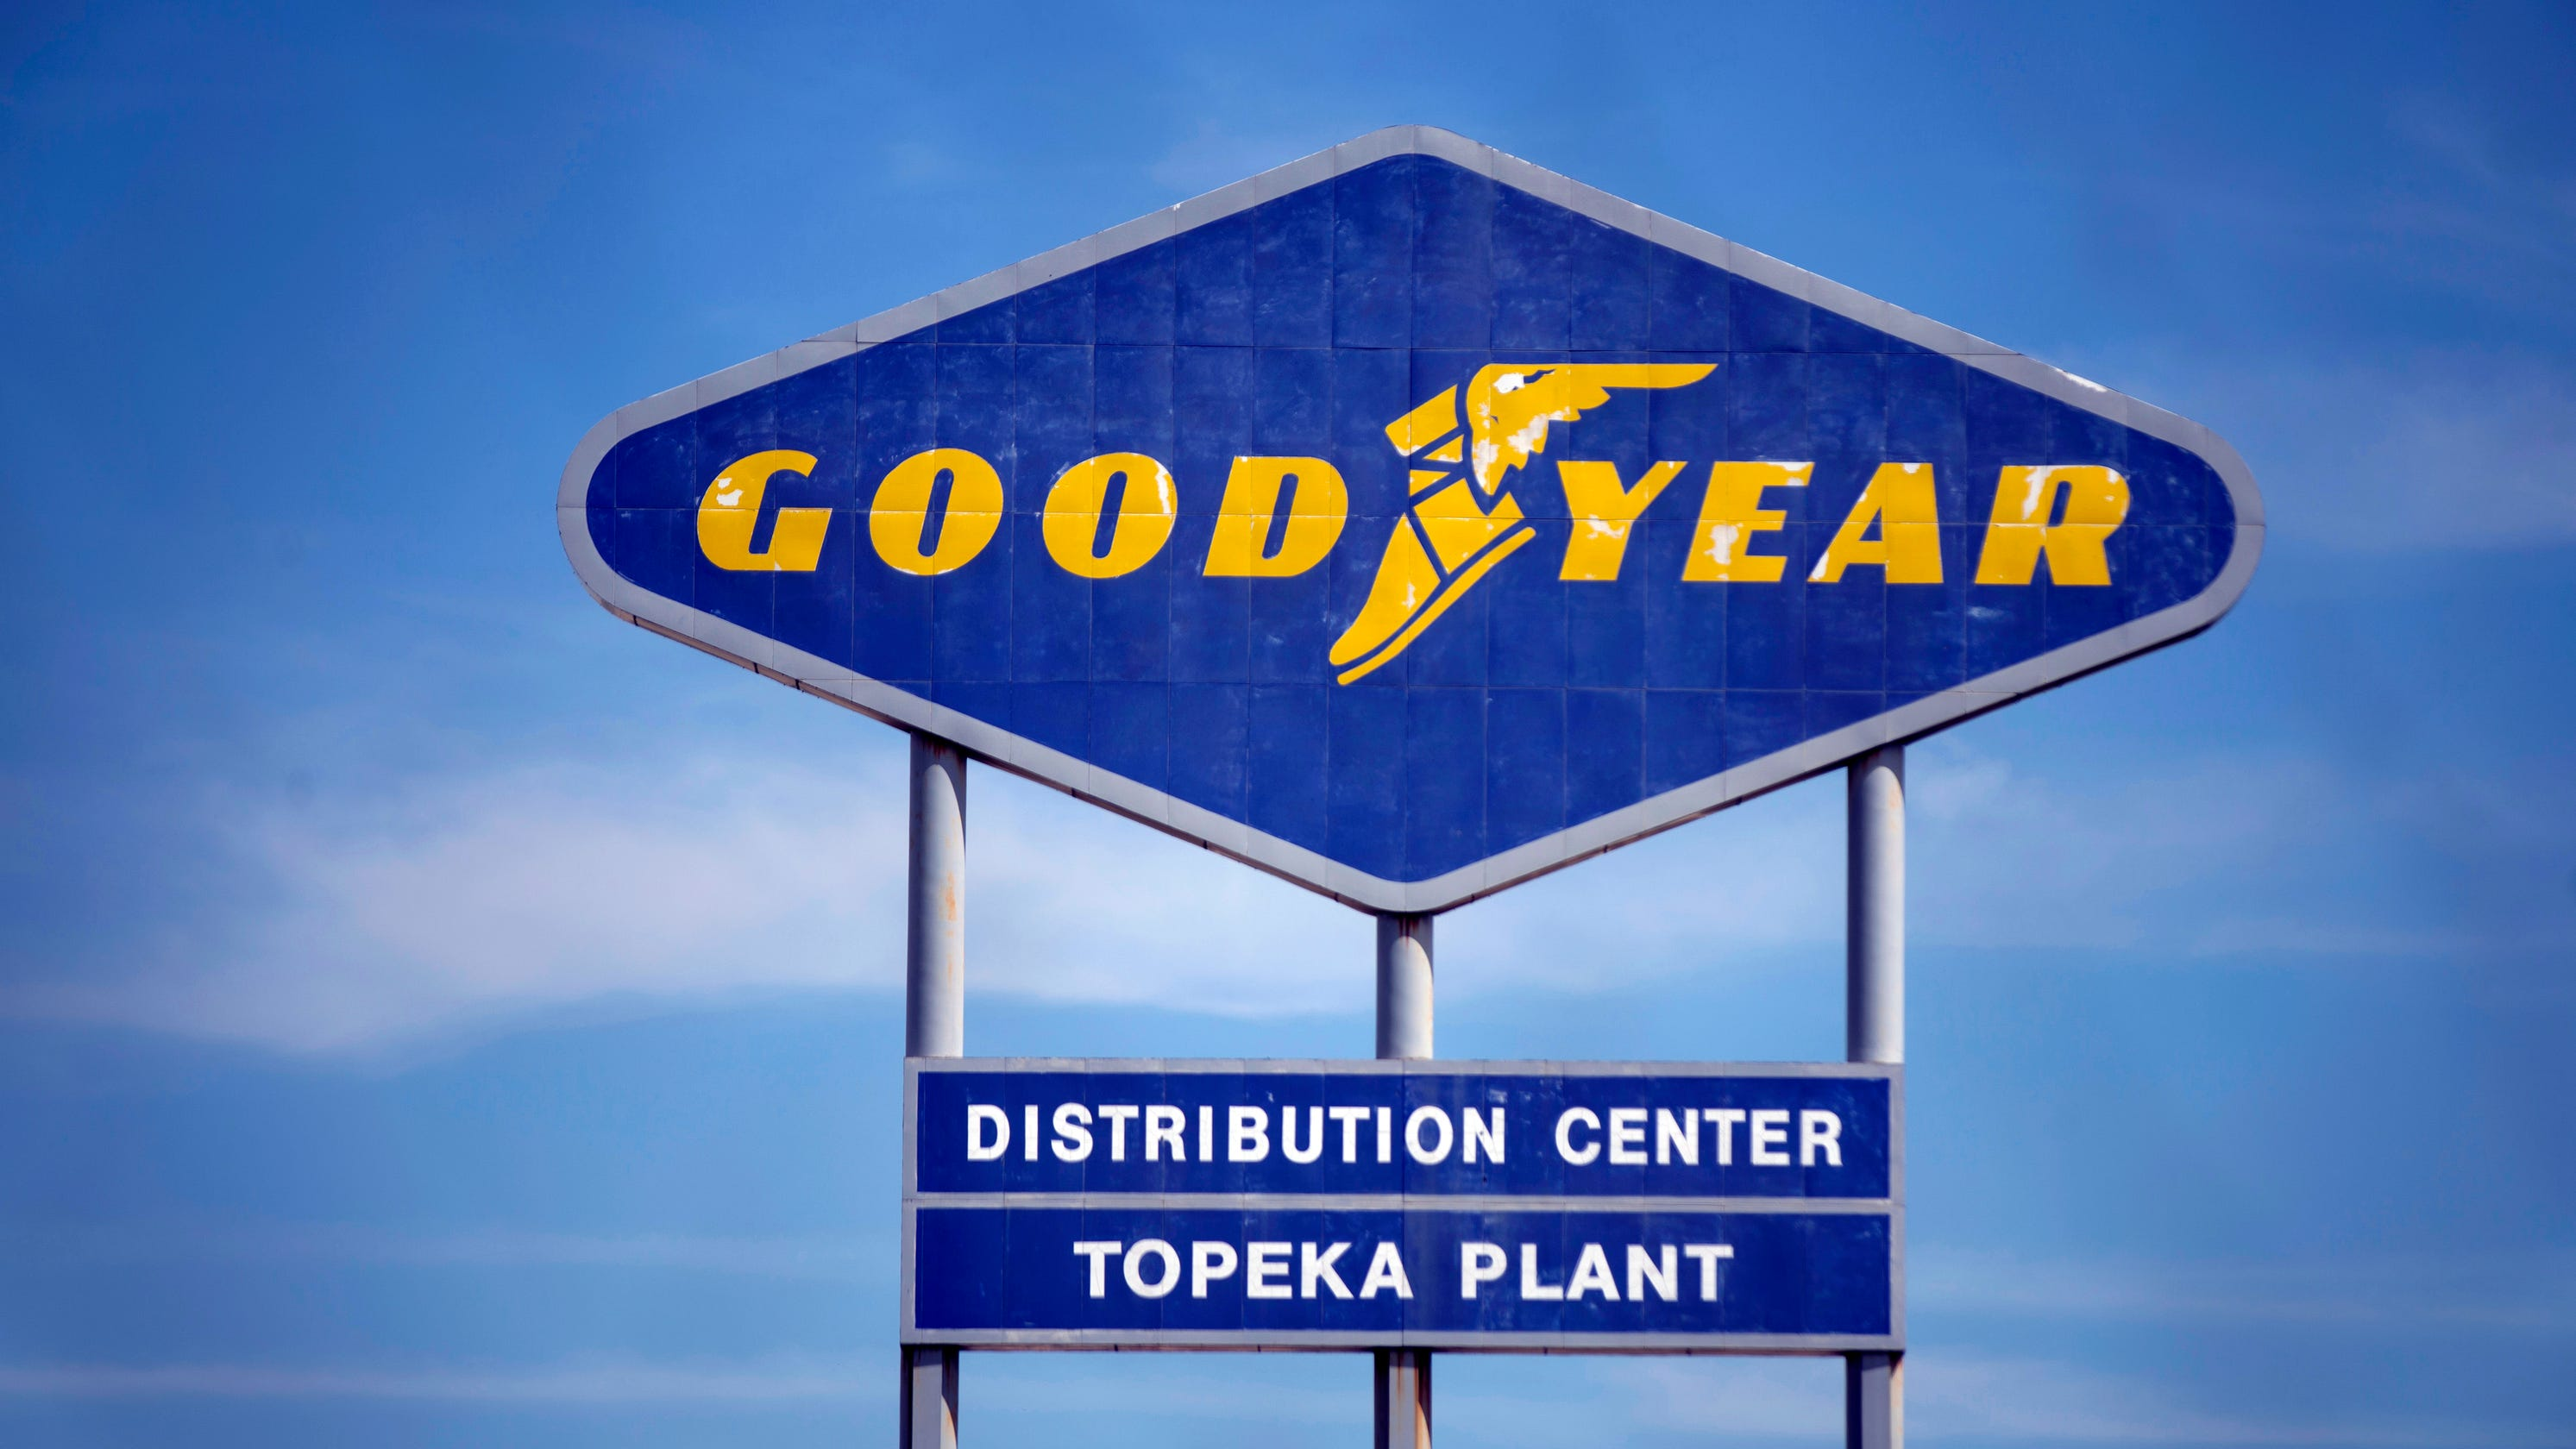 Robert Mercer, Goodyear's former CEO and chairman, dies at 96